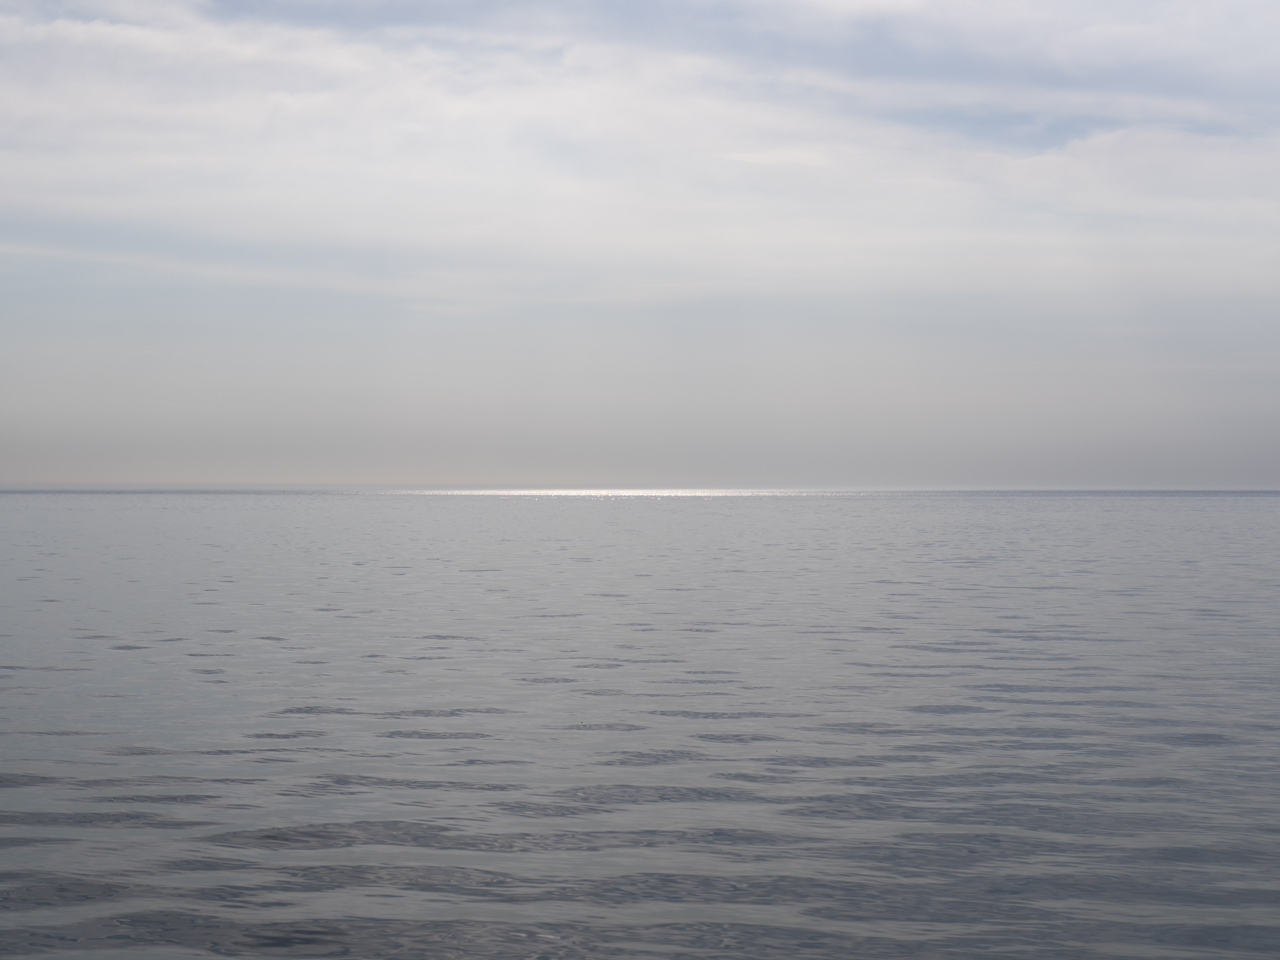 a sliver of light hits the water at the horizon of Lake Michigan